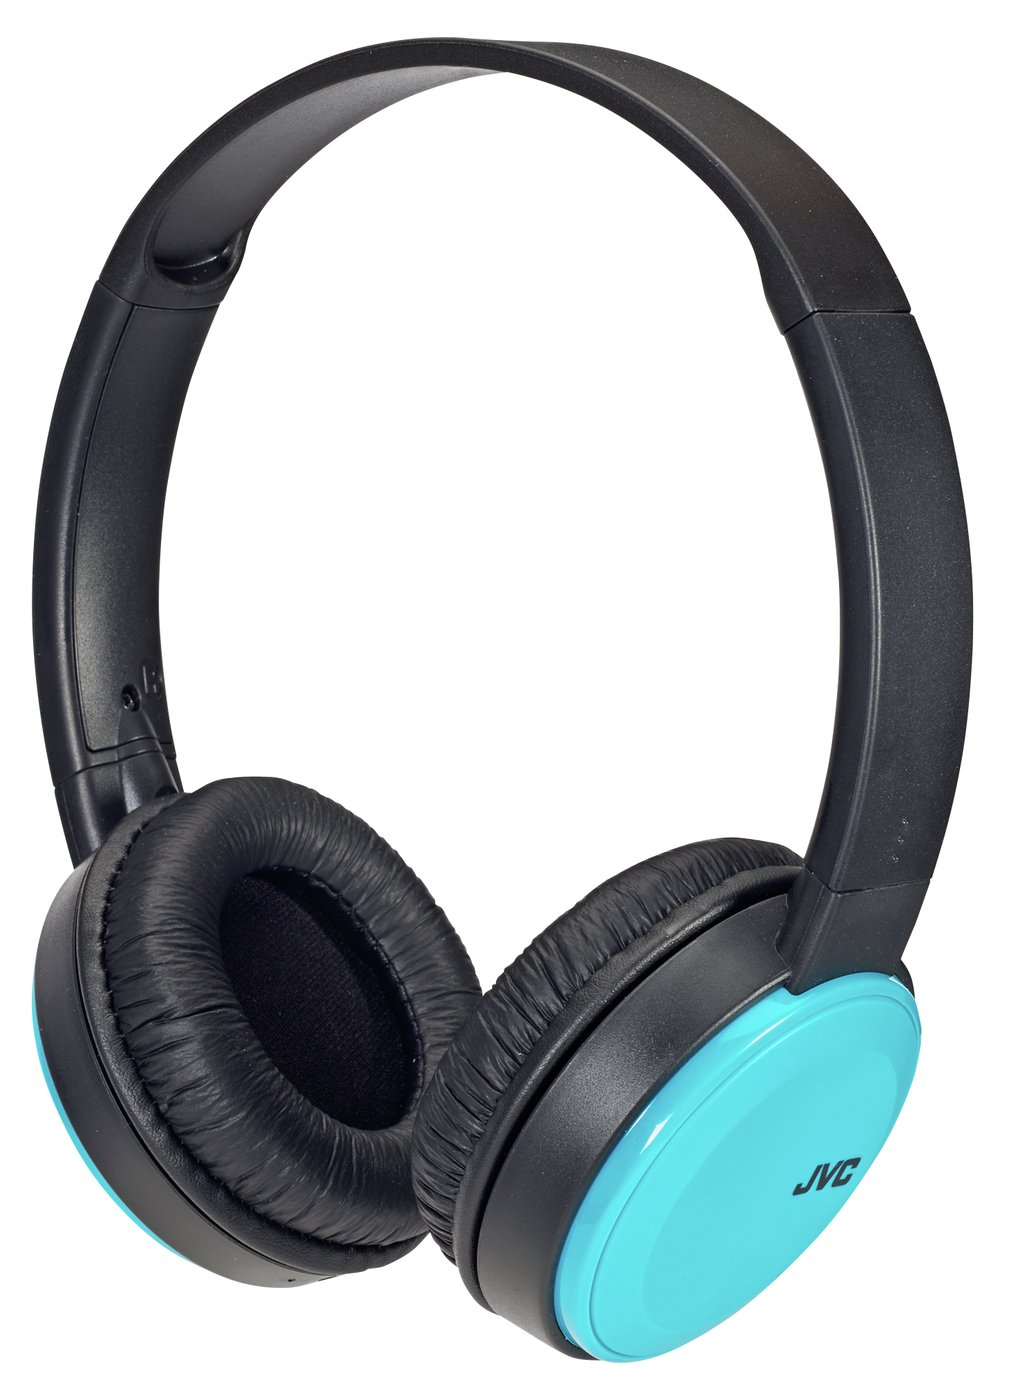 JVC HA-S30 Wireless On-Ear Headphones